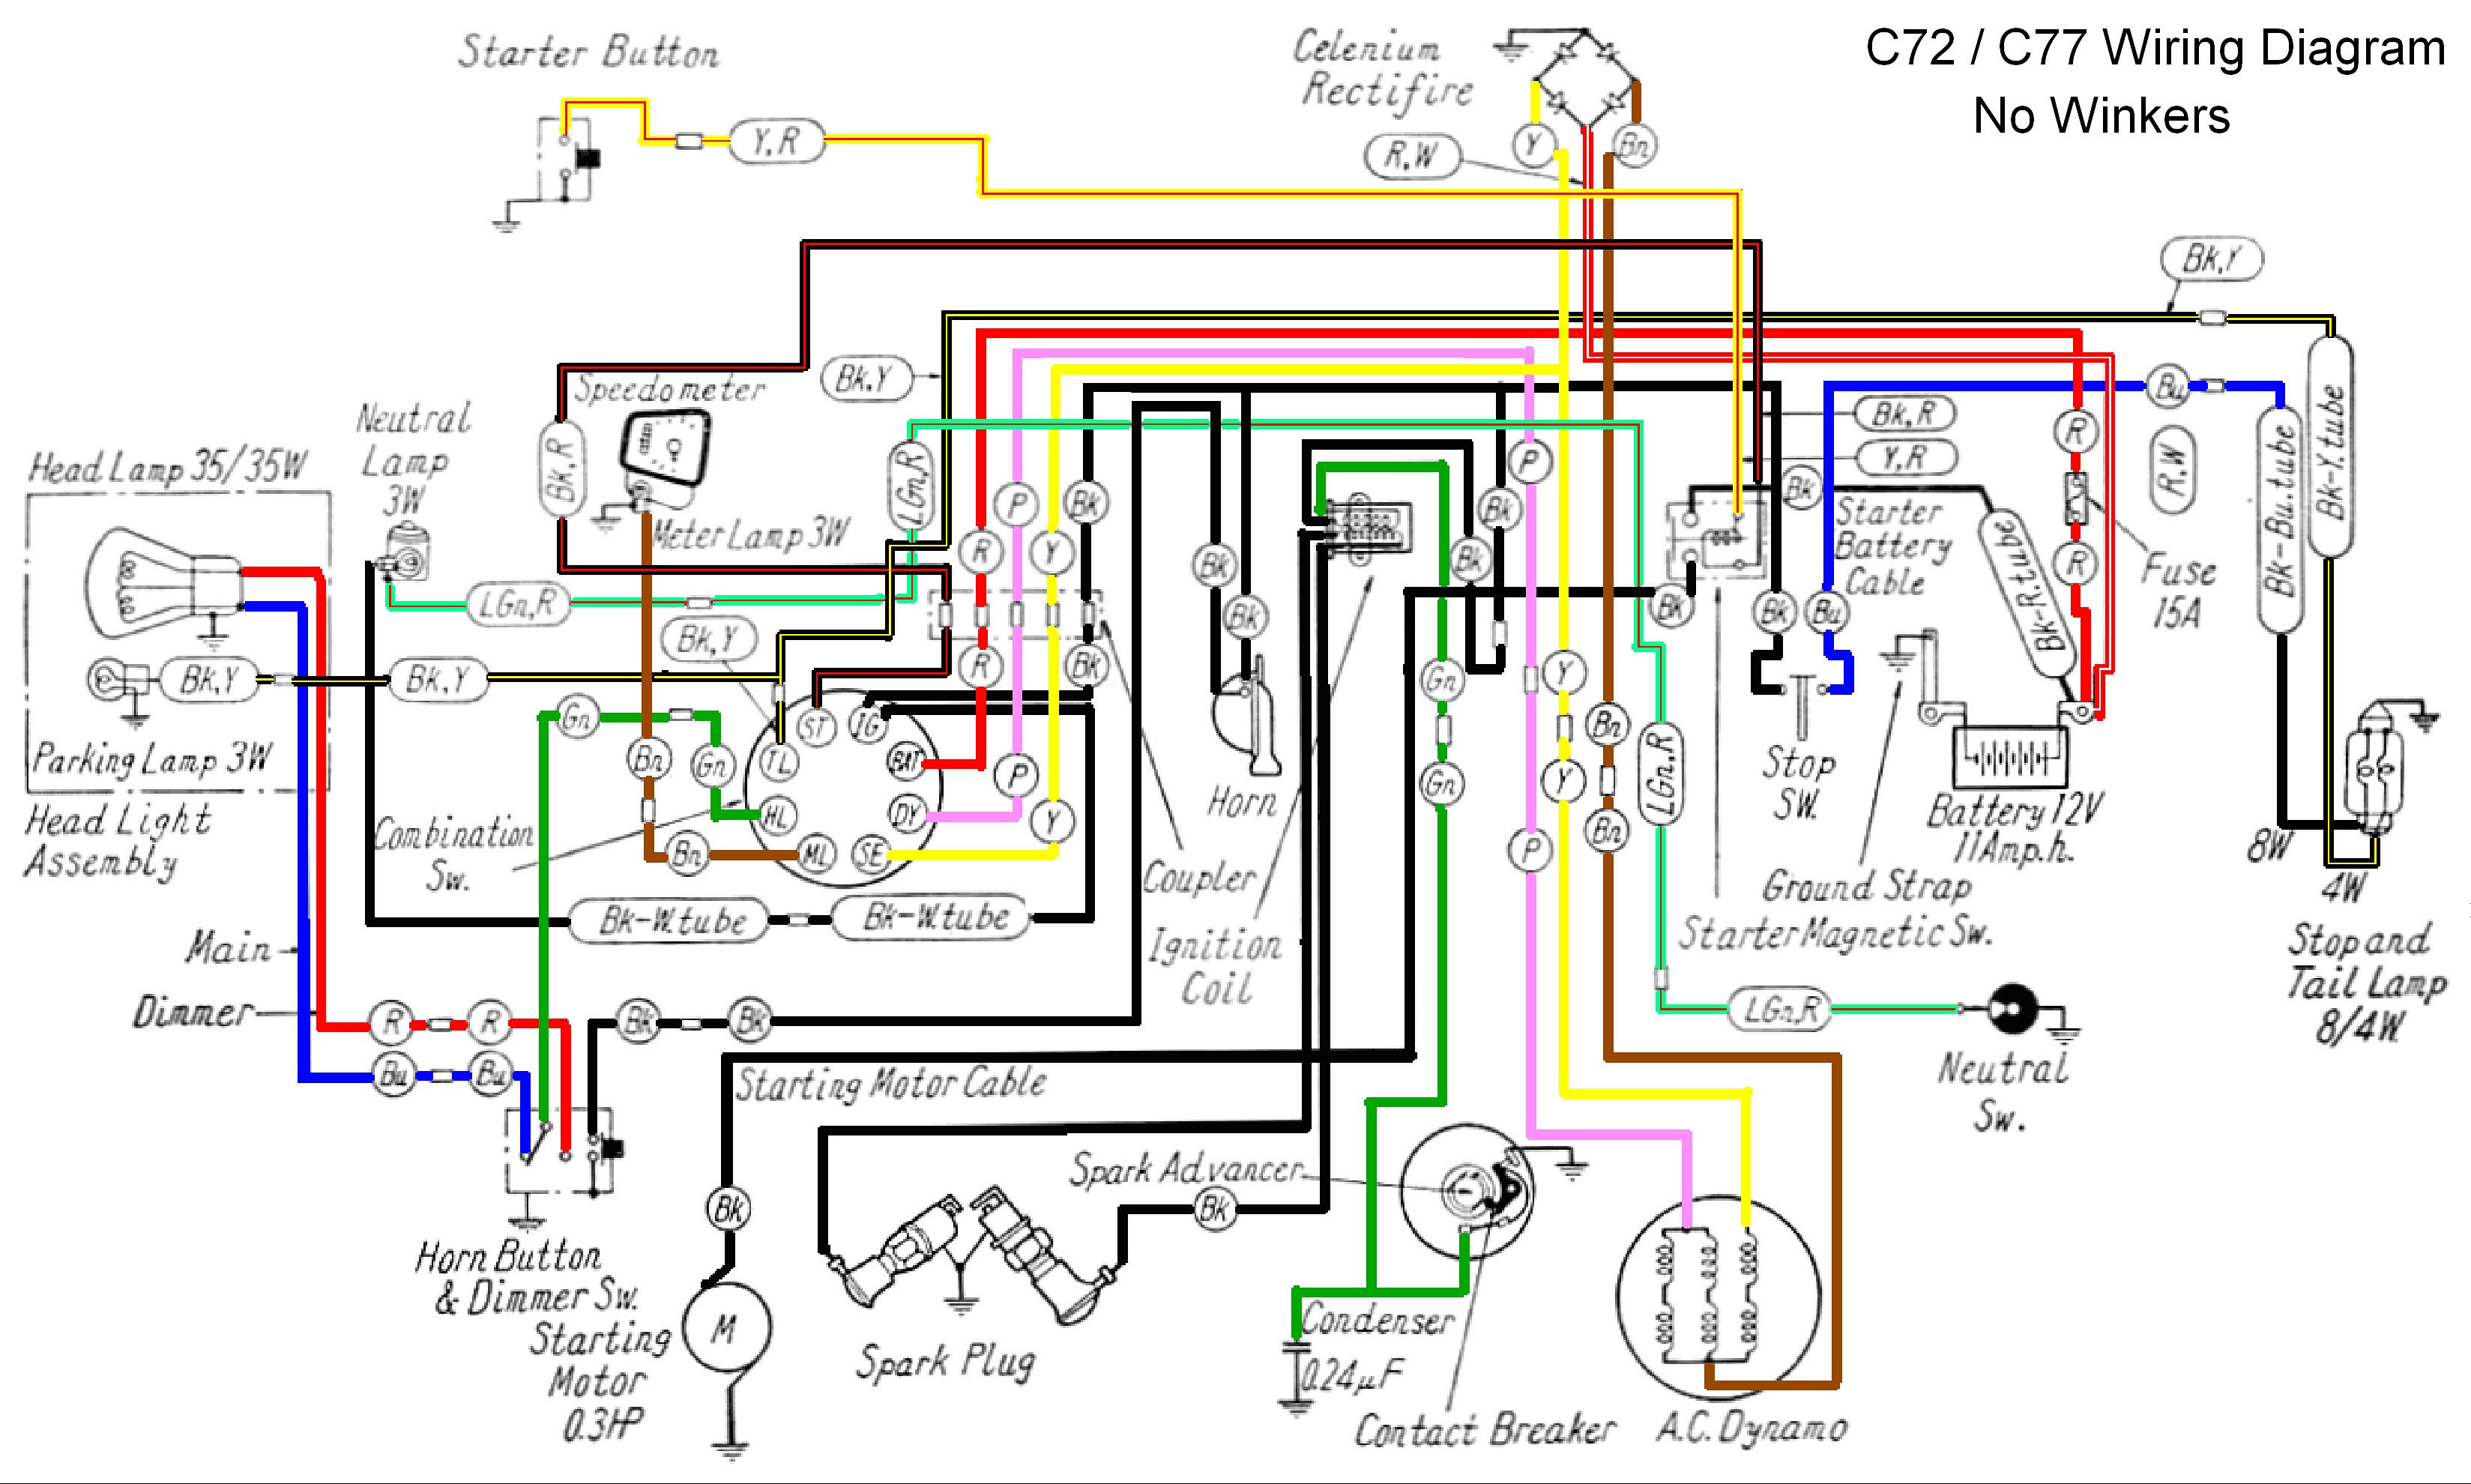 fairing wiring diagram for 1982 honda gl500 1982 honda ct110 wiring xr650l wiring diagram 1982 honda [ 3297 x 1980 Pixel ]